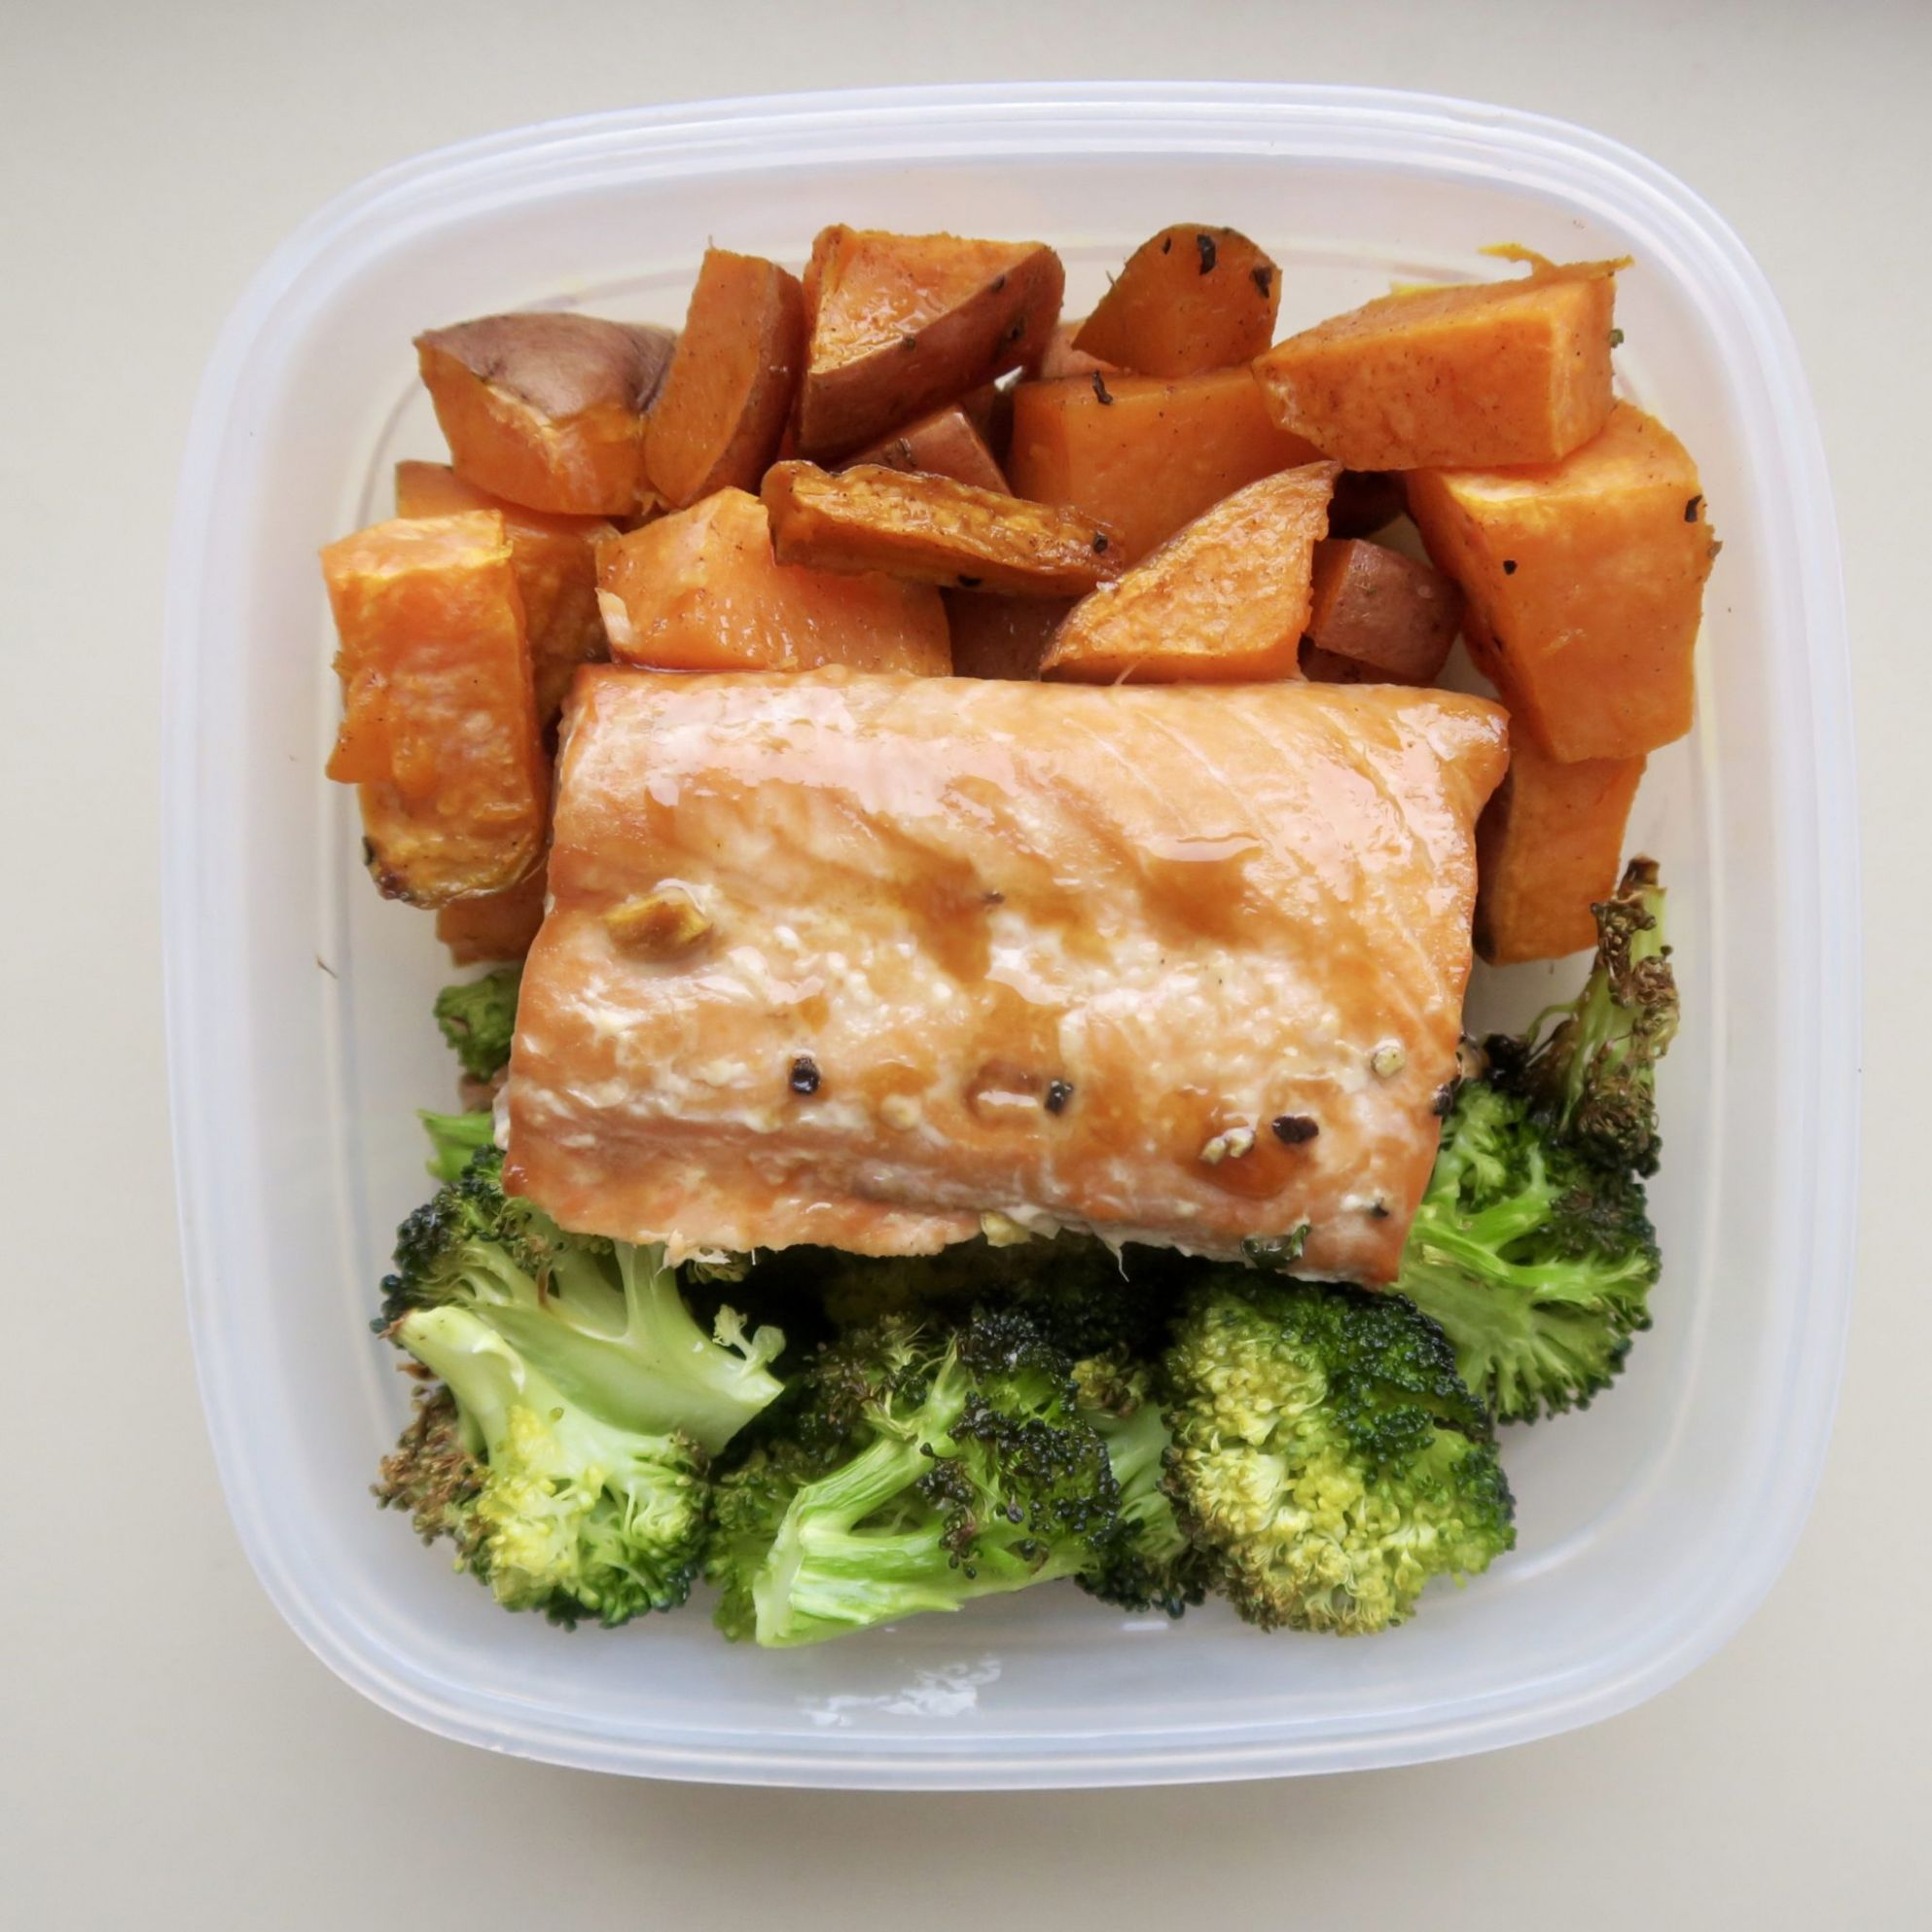 Cold Lunch Ideas: Meal Prep Recipes When You Don't Have A Microwave